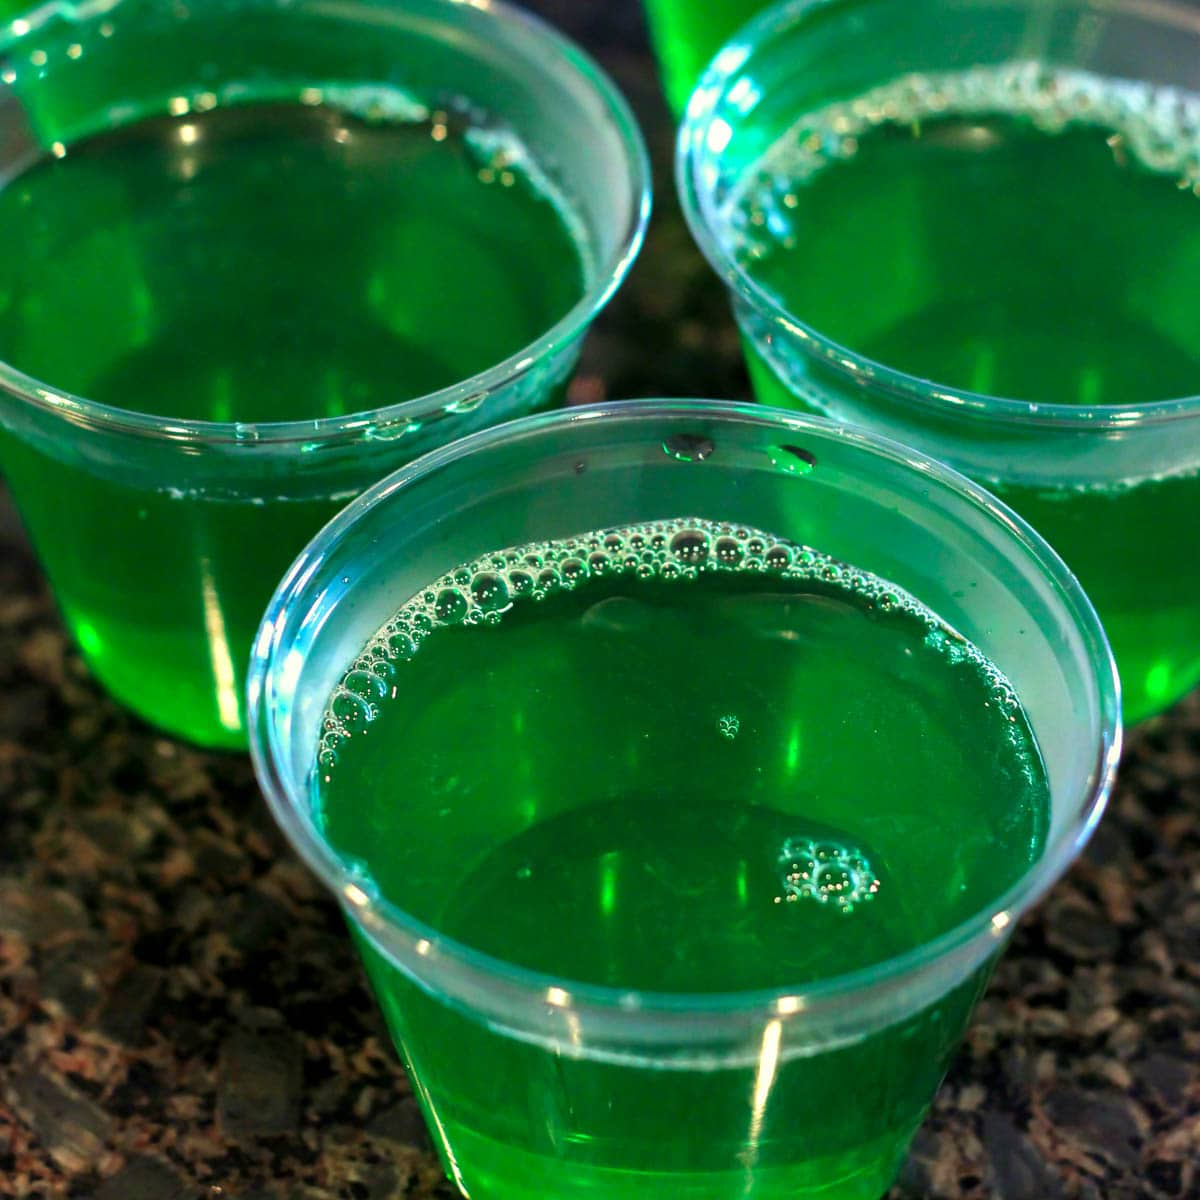 green Jello in a clear cup